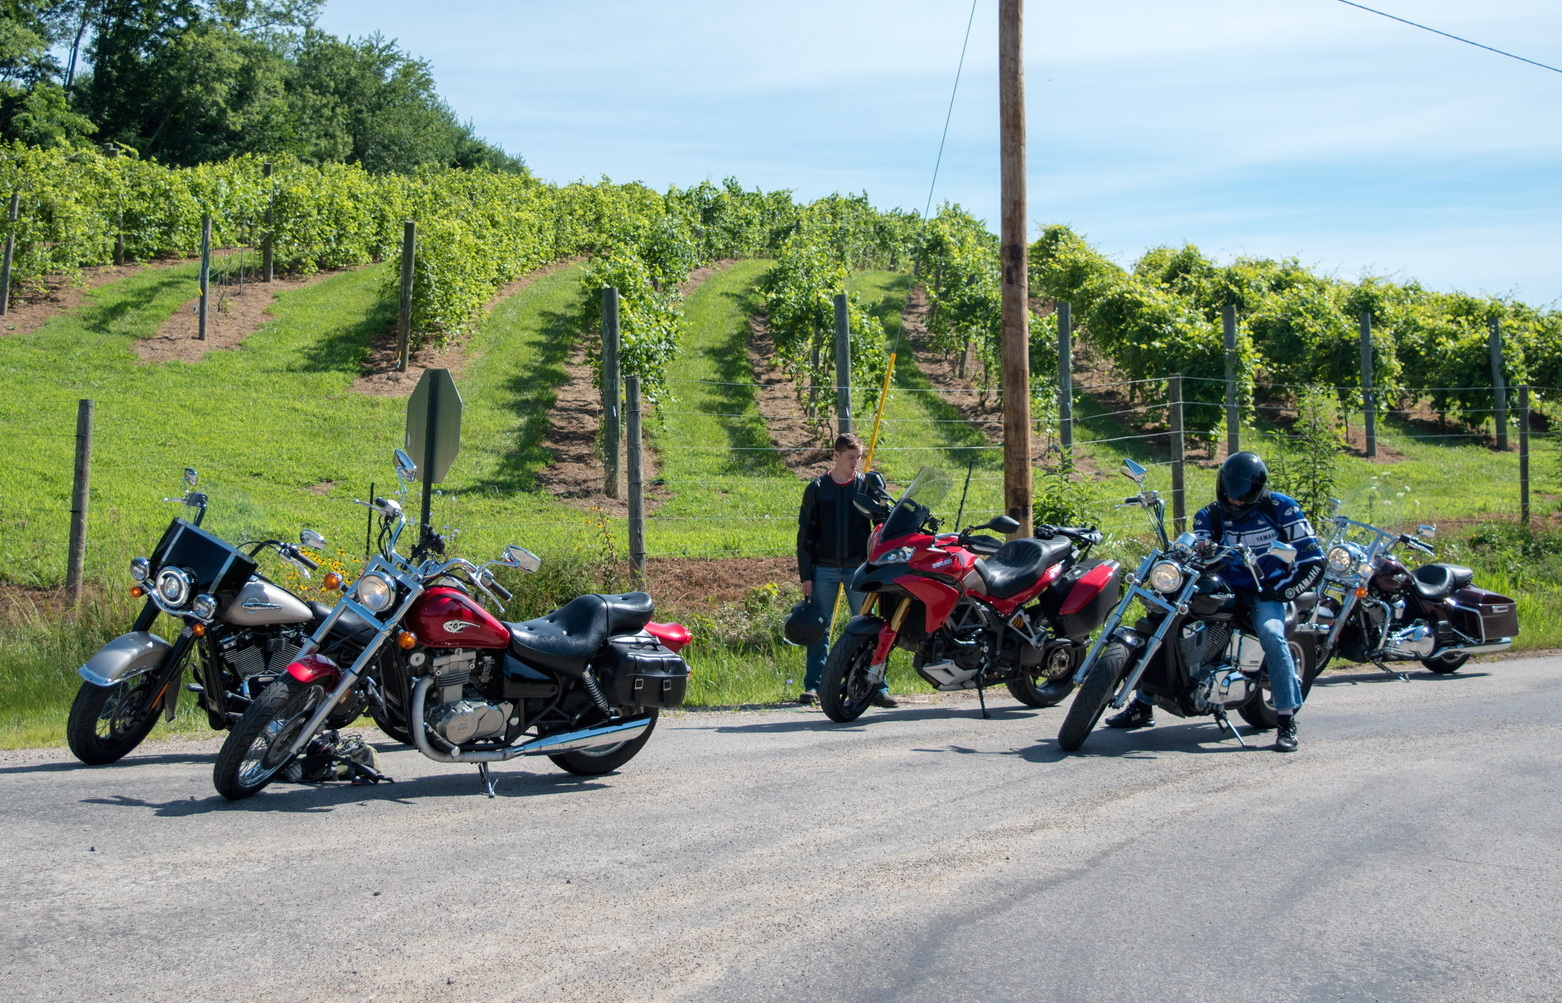 Petit Chevaliers Vineyard on Laurel Run Rd south of SR 56. Oh, and some rad rides, thanks Sarah Sipos for the photo!